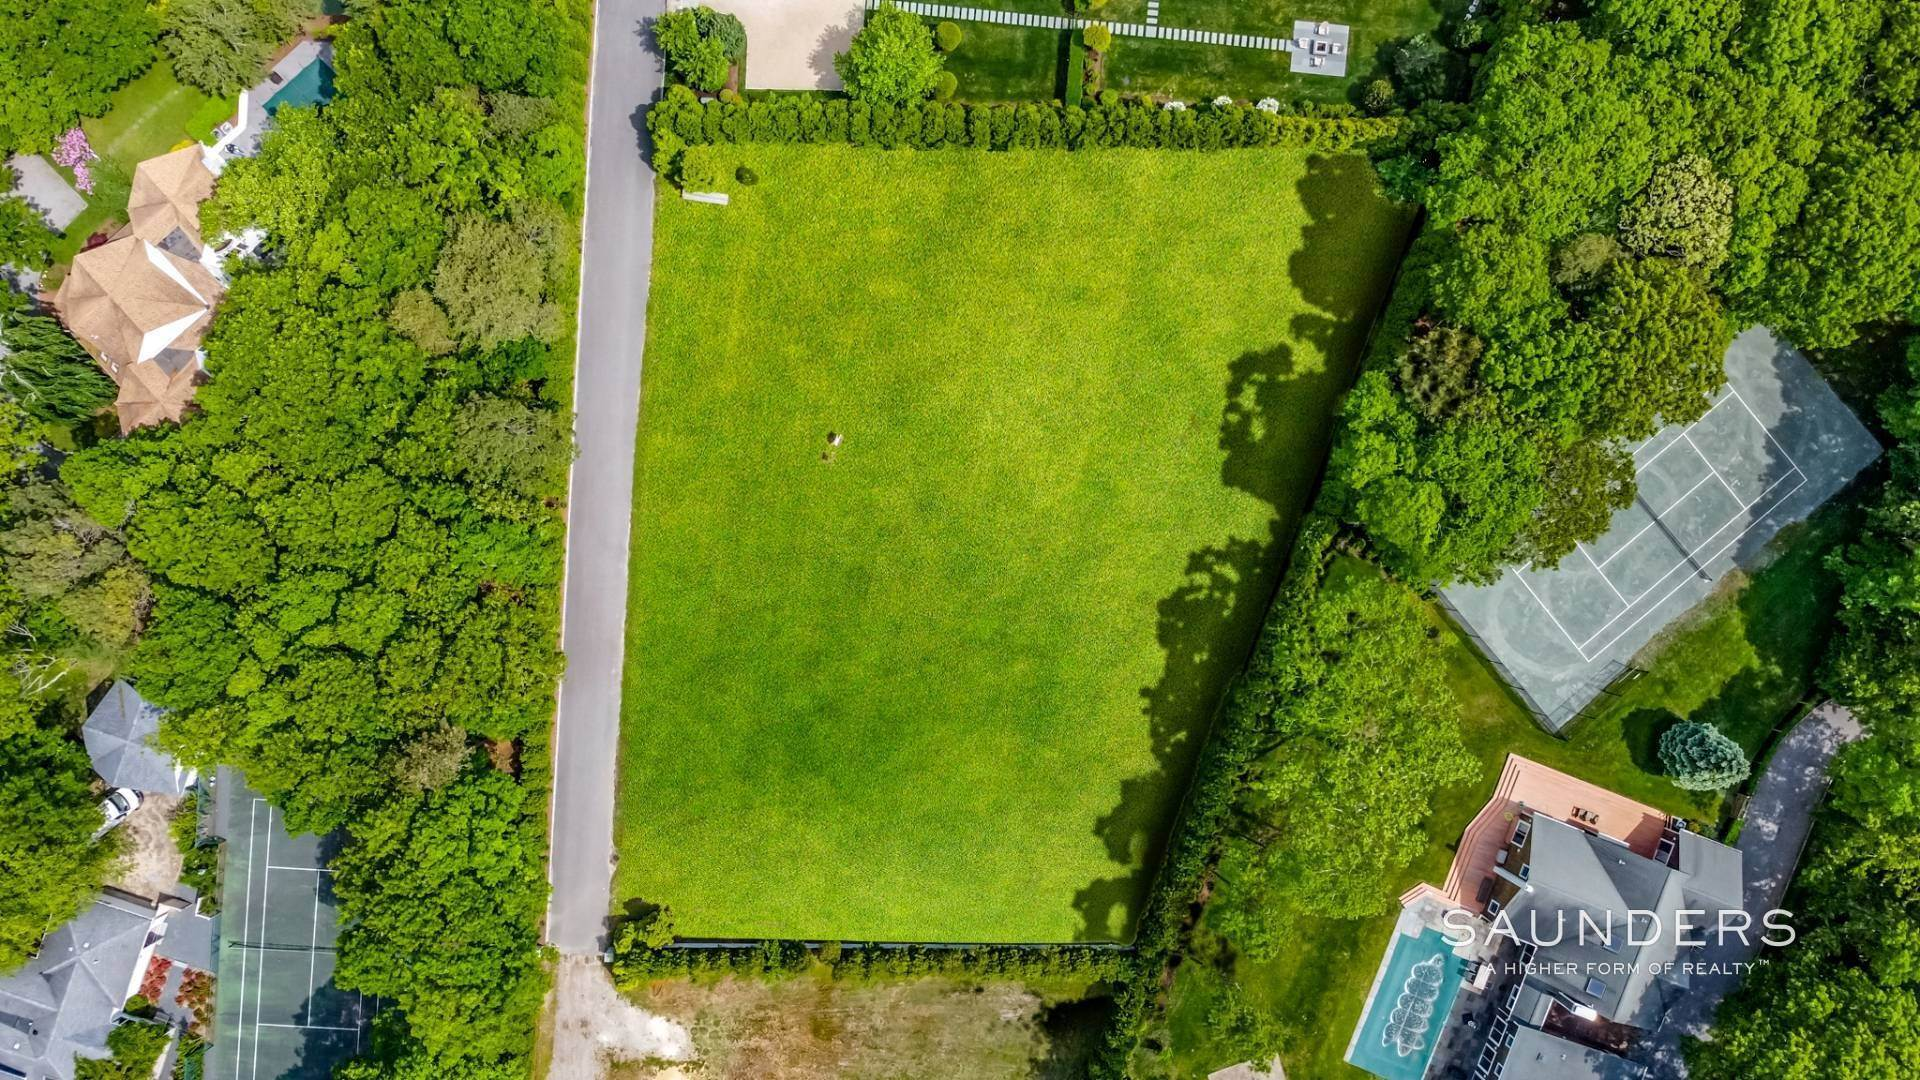 4. Land for Sale at Vacant Land Opportunity Center Of The Village Of Quogue 129 Montauk Highway, Quogue Village, Southampton Town, NY 11959